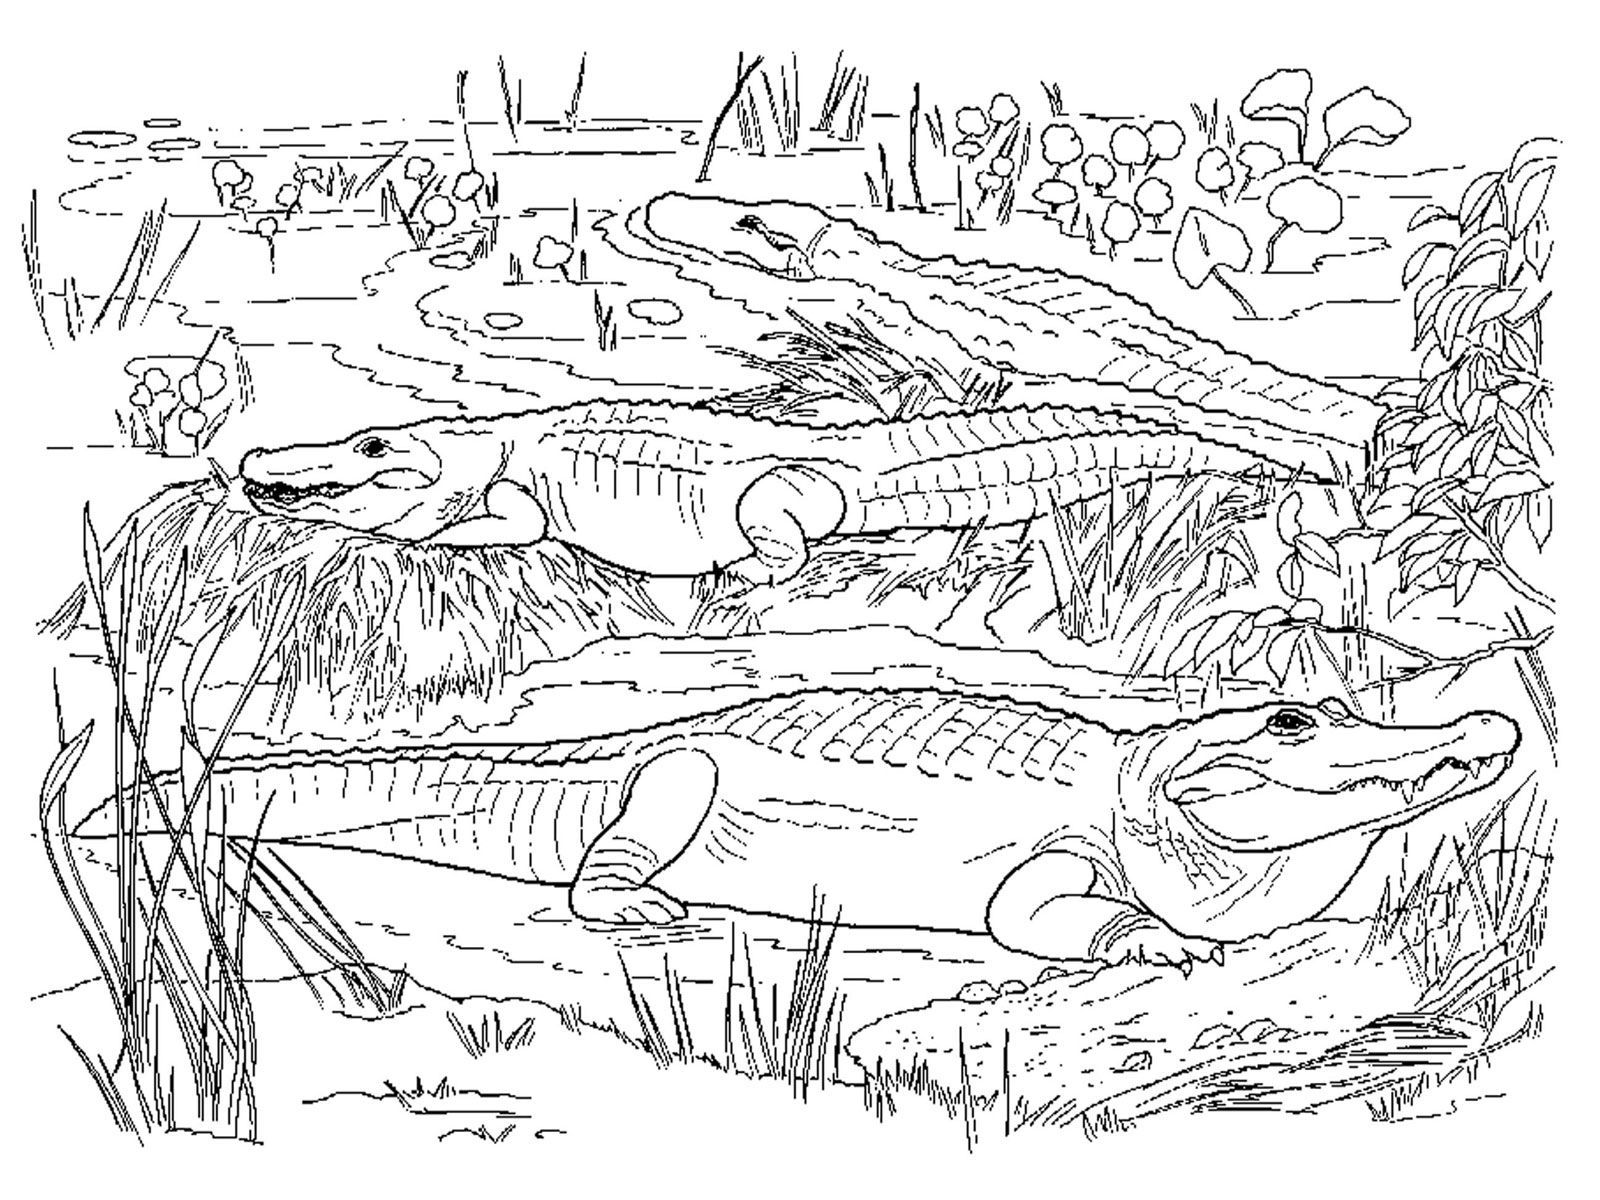 Realistic Alligator Coloring Pages Animal Coloring Pages Coloring Pages For Kids Coloring Pages